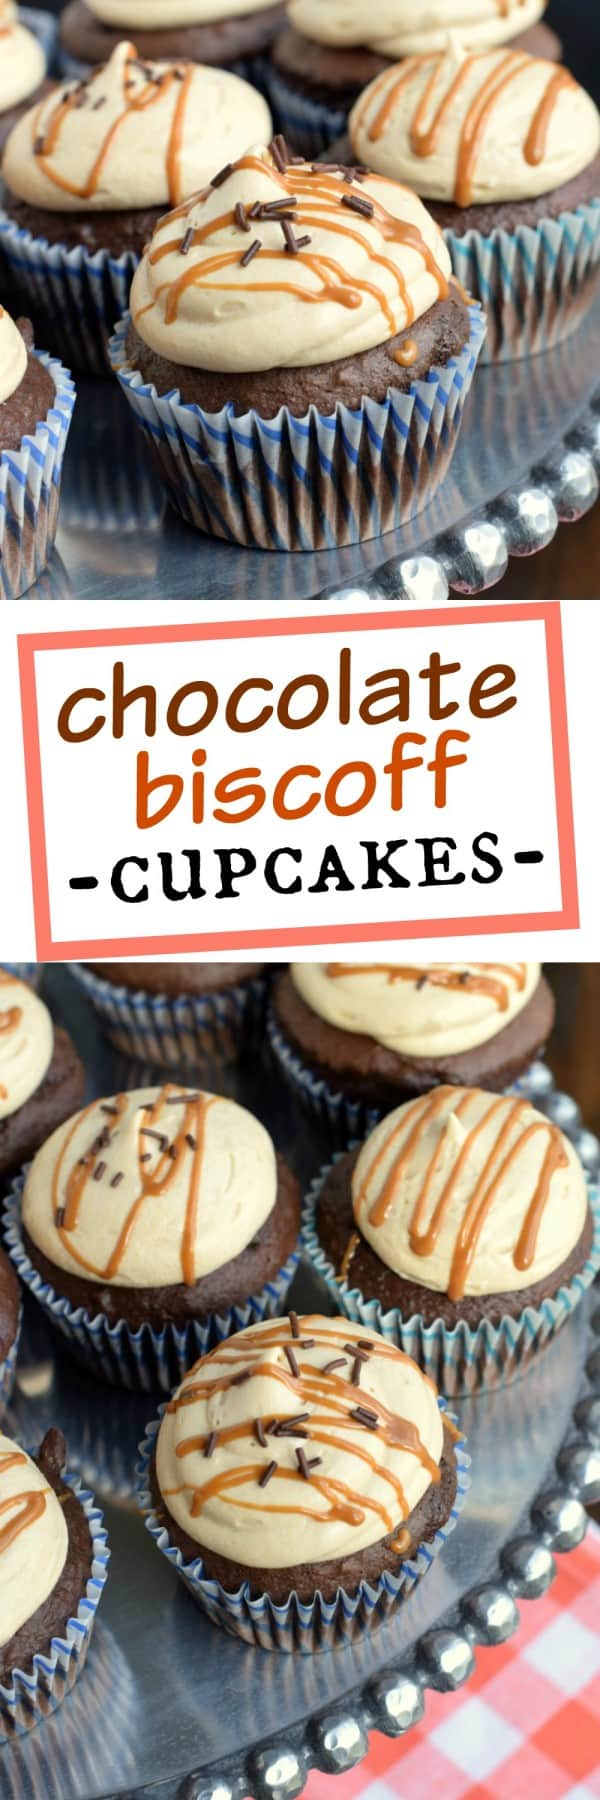 Chocolate Biscoff Cupcakes: the ultimate chocolate cupcake recipe topped with creamy, decadent Biscoff frosting! #nutfree